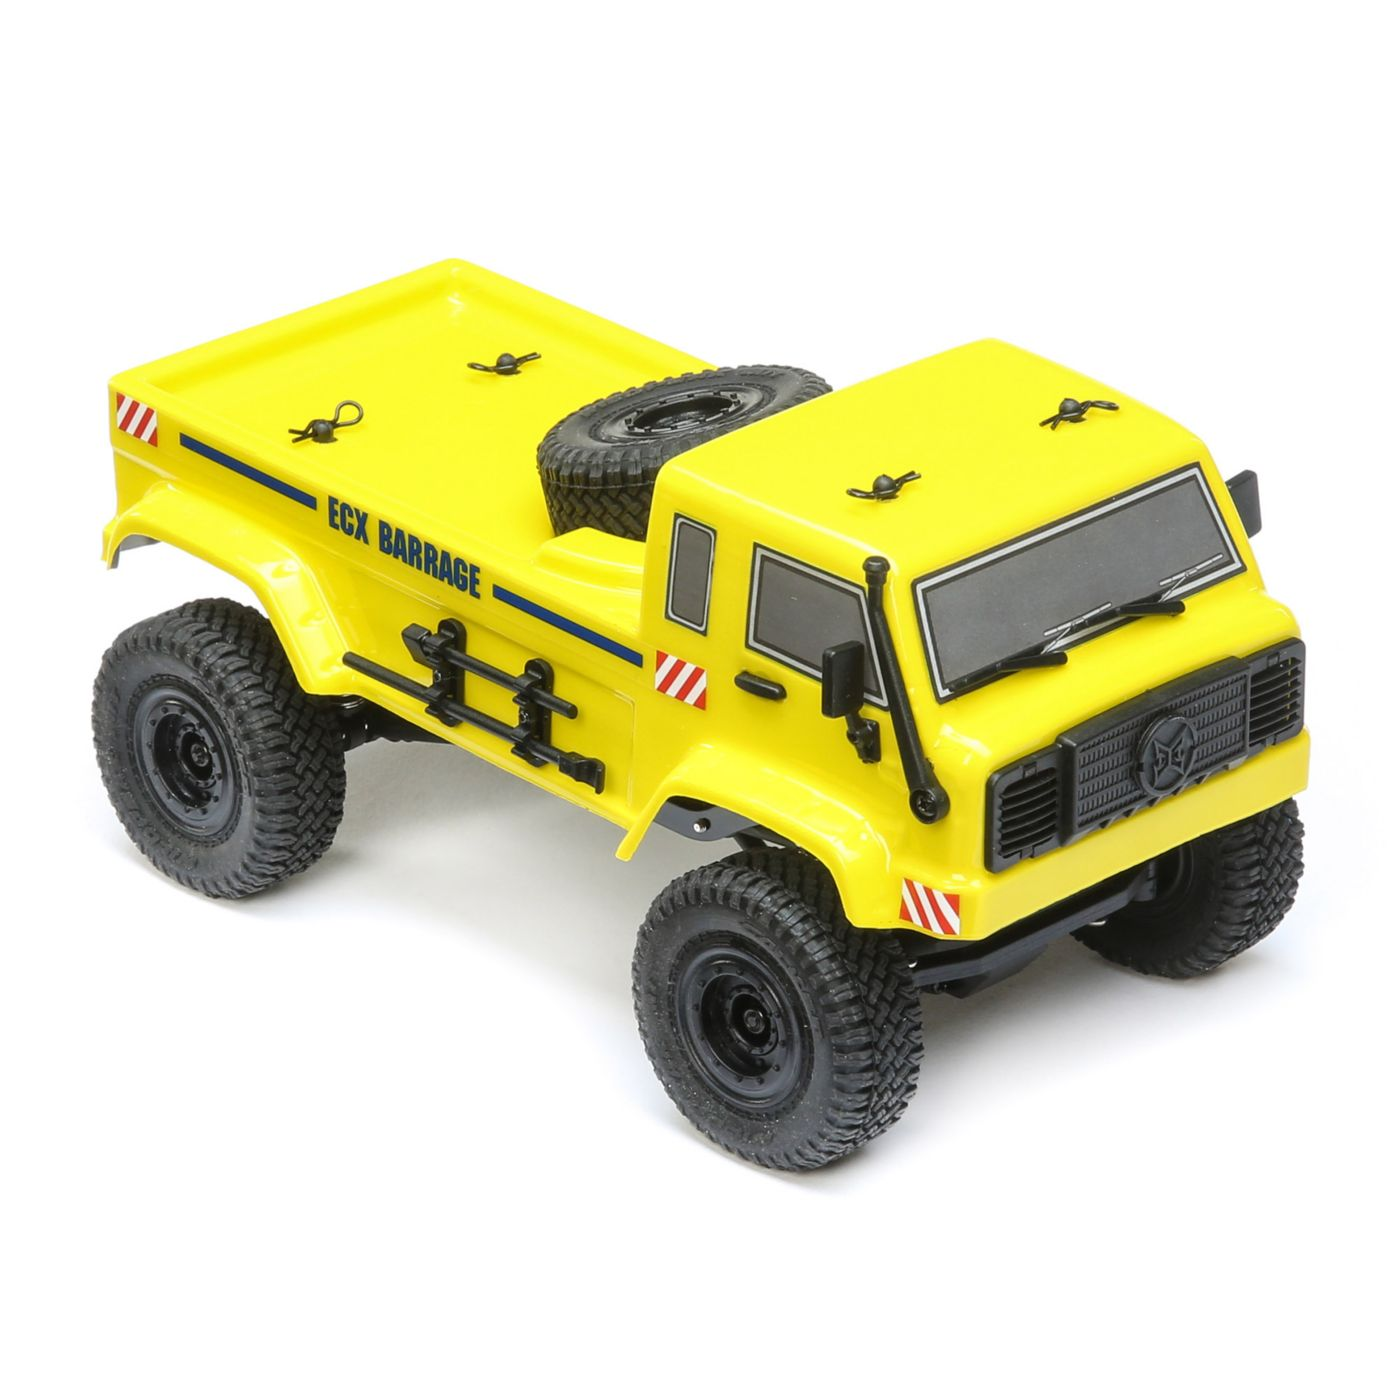 ECX Barrage 1/24 UV Scaler Crawler